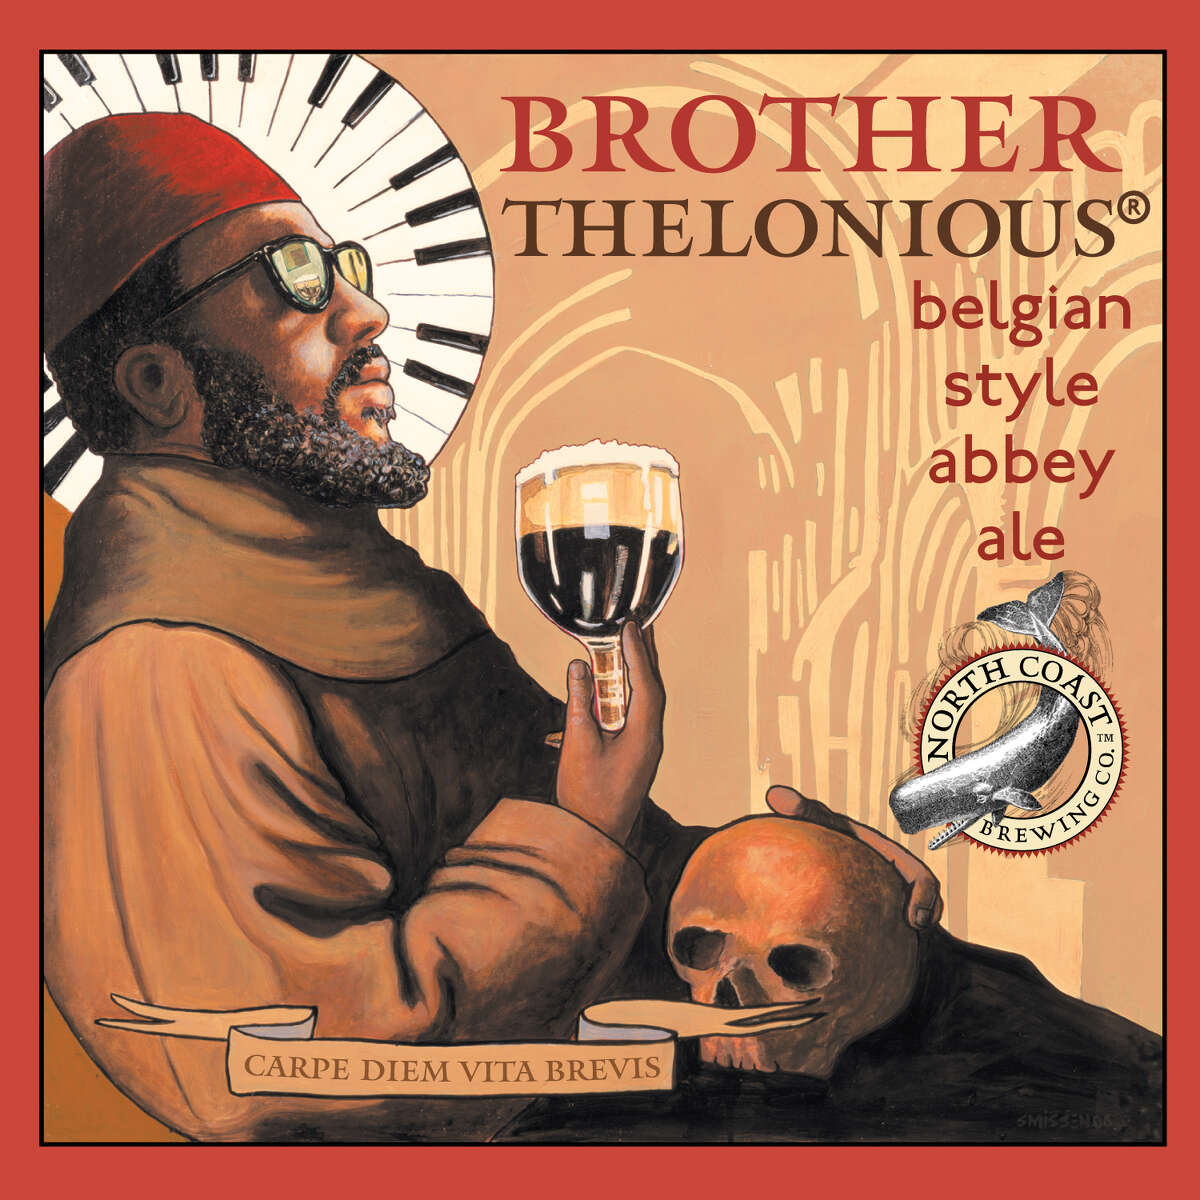 North Coast Brewing Co. Brother Thelonious Belgian-style abbey ale